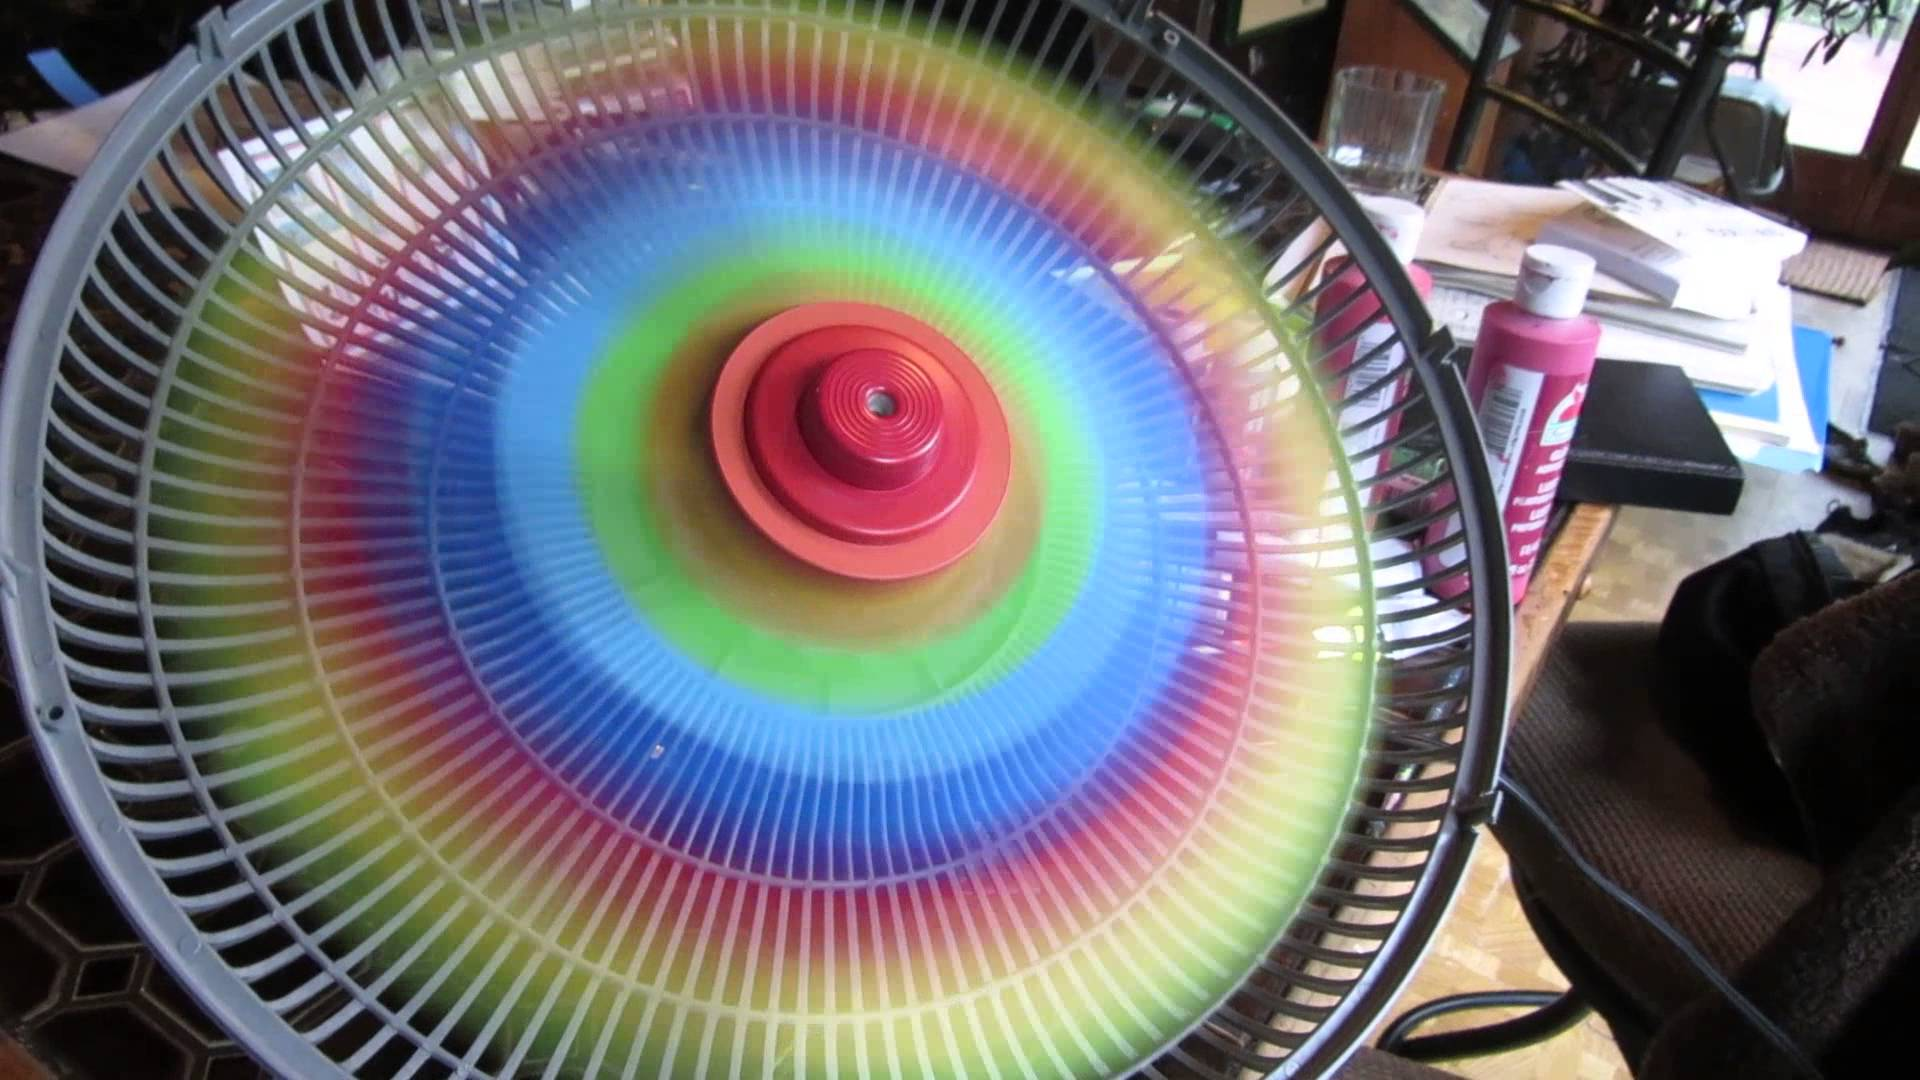 Diy Rainbow Fan That Will Brighten Up Any Room Wow Amazing